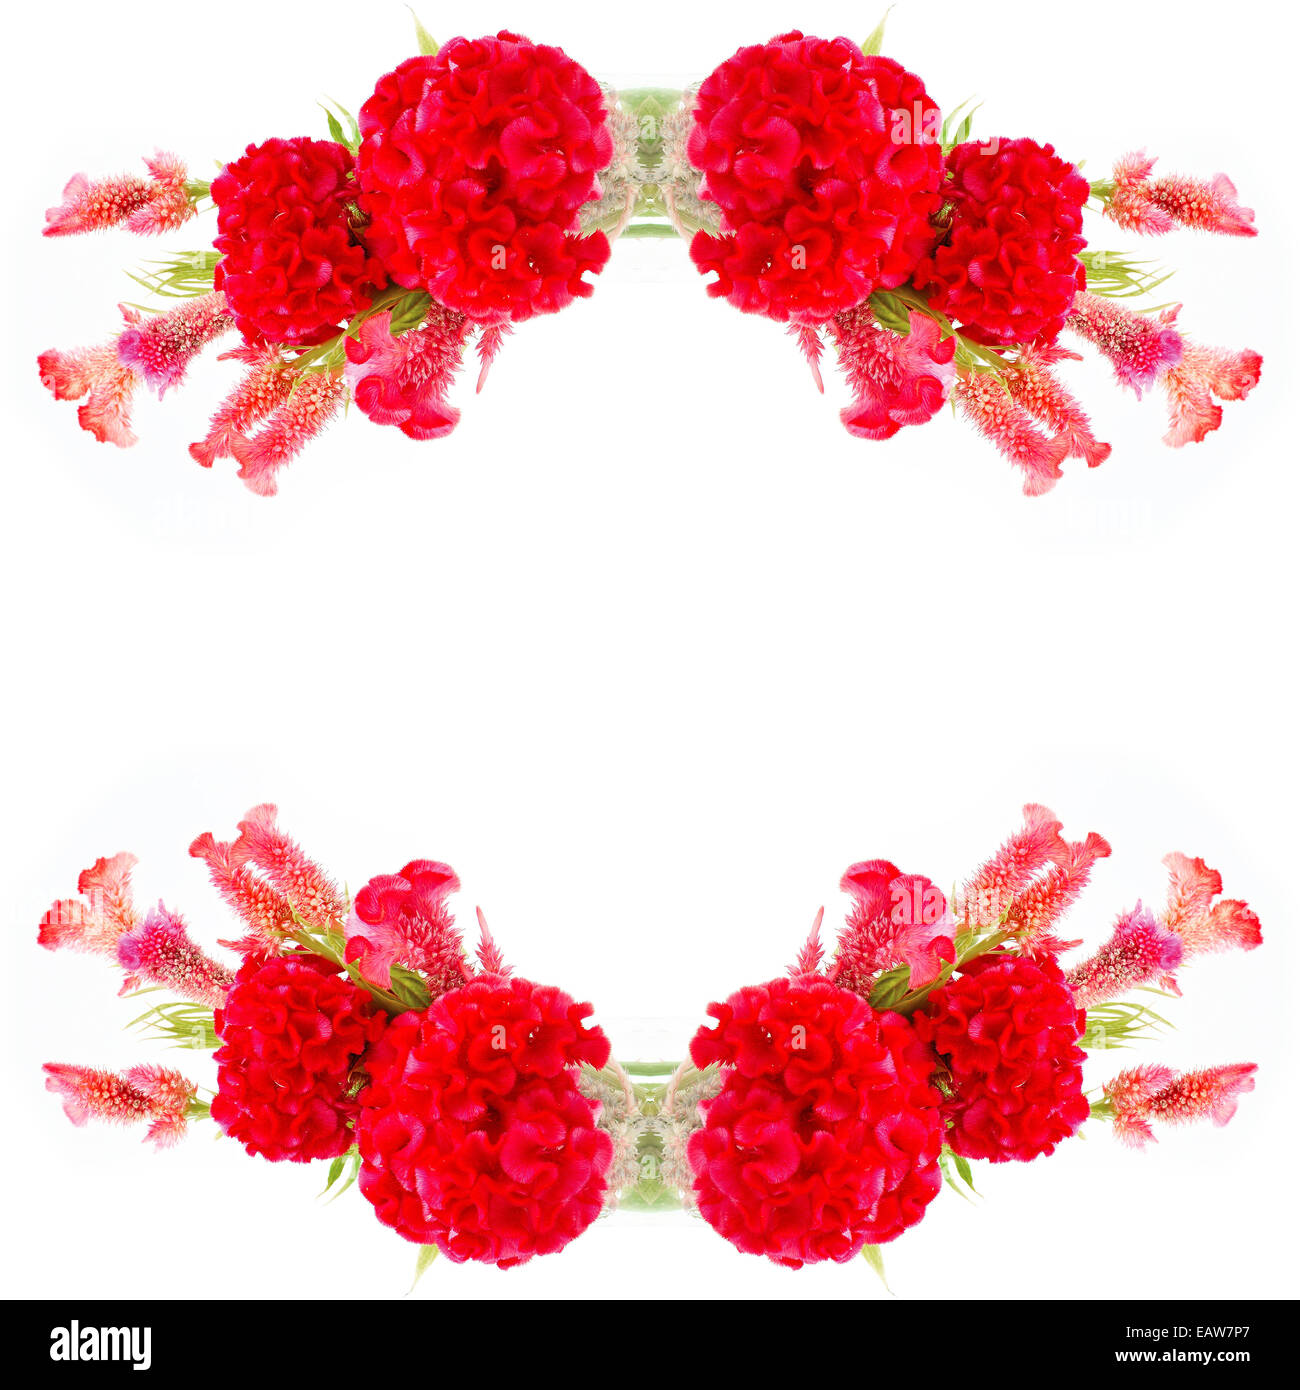 Red flower, Cockscomb or Chinese Wool Flower (Celosia argentea), isolated on a white background Stock Photo